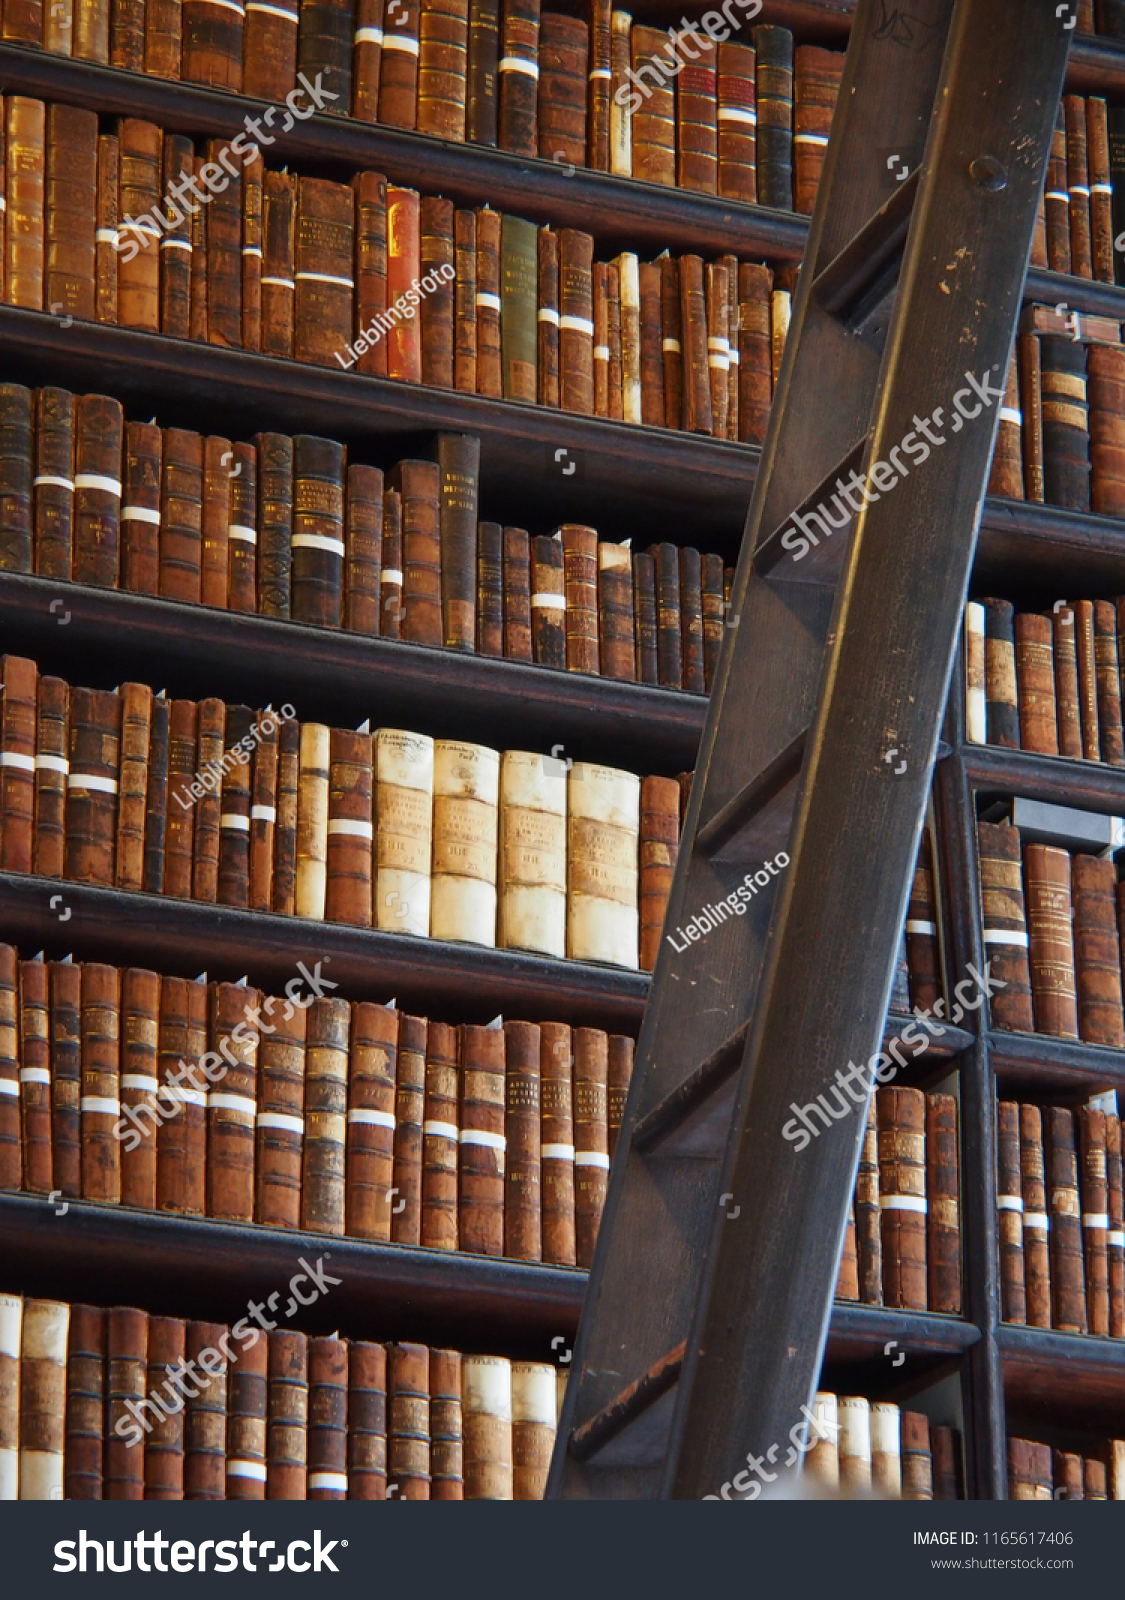 Leiter Regal Bibliothek Regal Alt Leiter Wissen Traditionell Stock Photo Edit